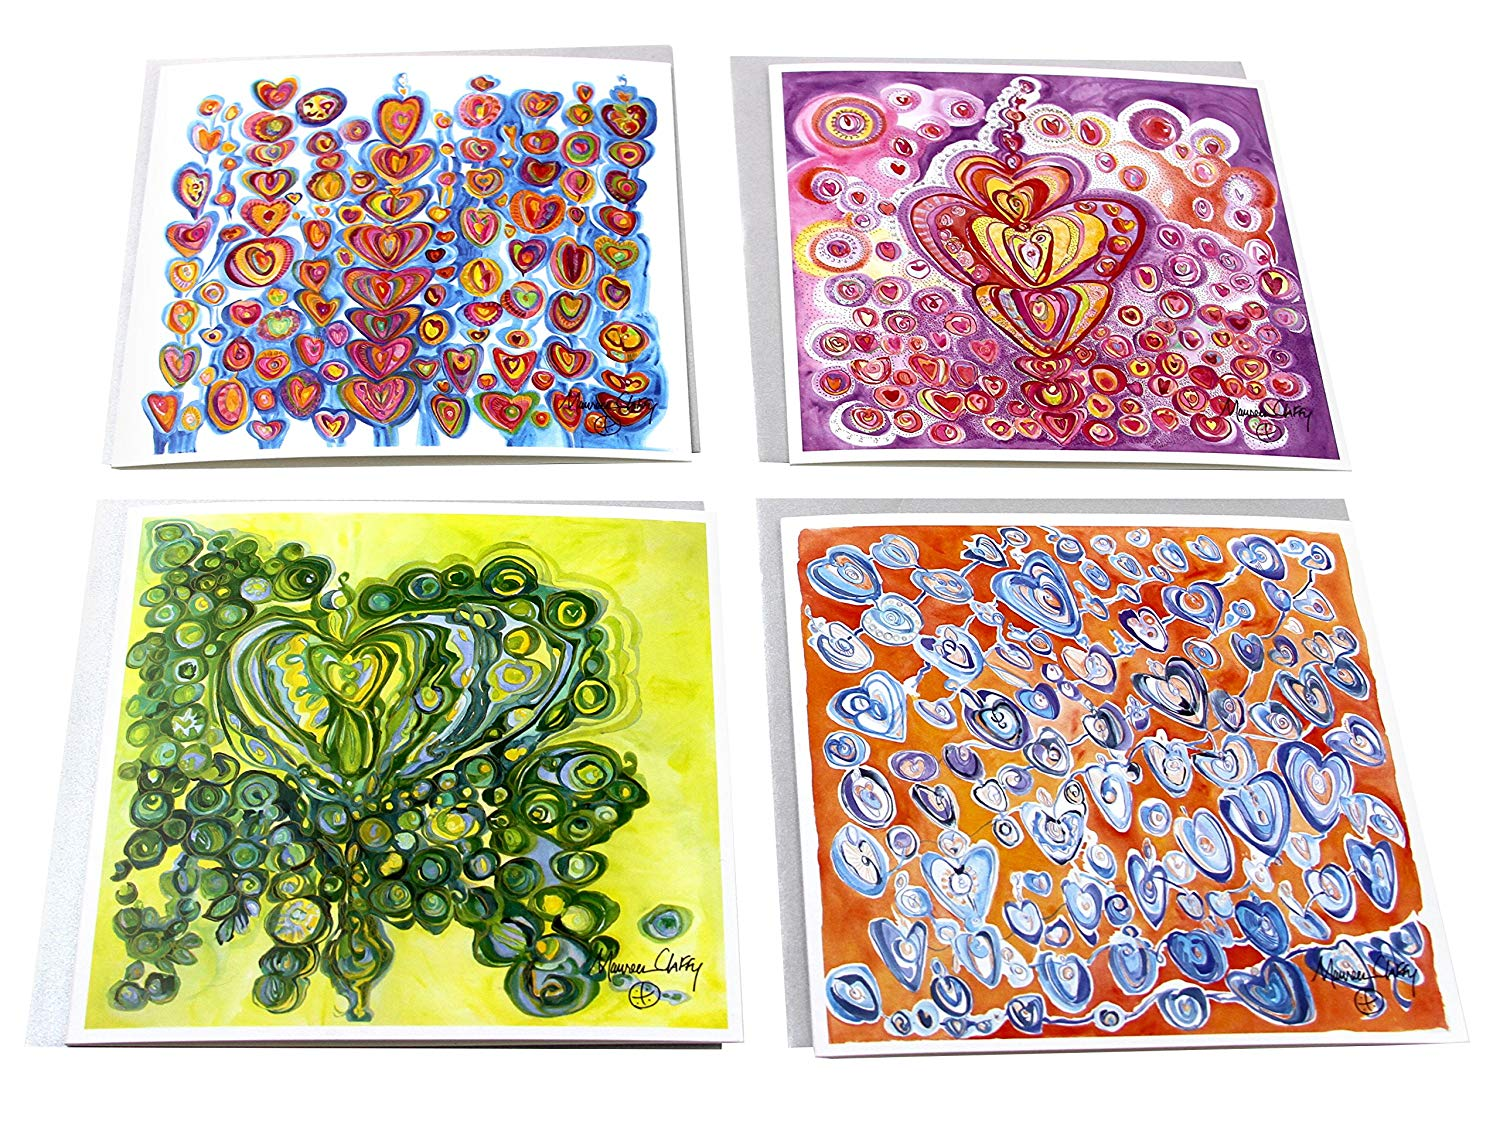 Blank Note Cards Sending You Love Notes by Maureen Claffy - The Compassion Collection